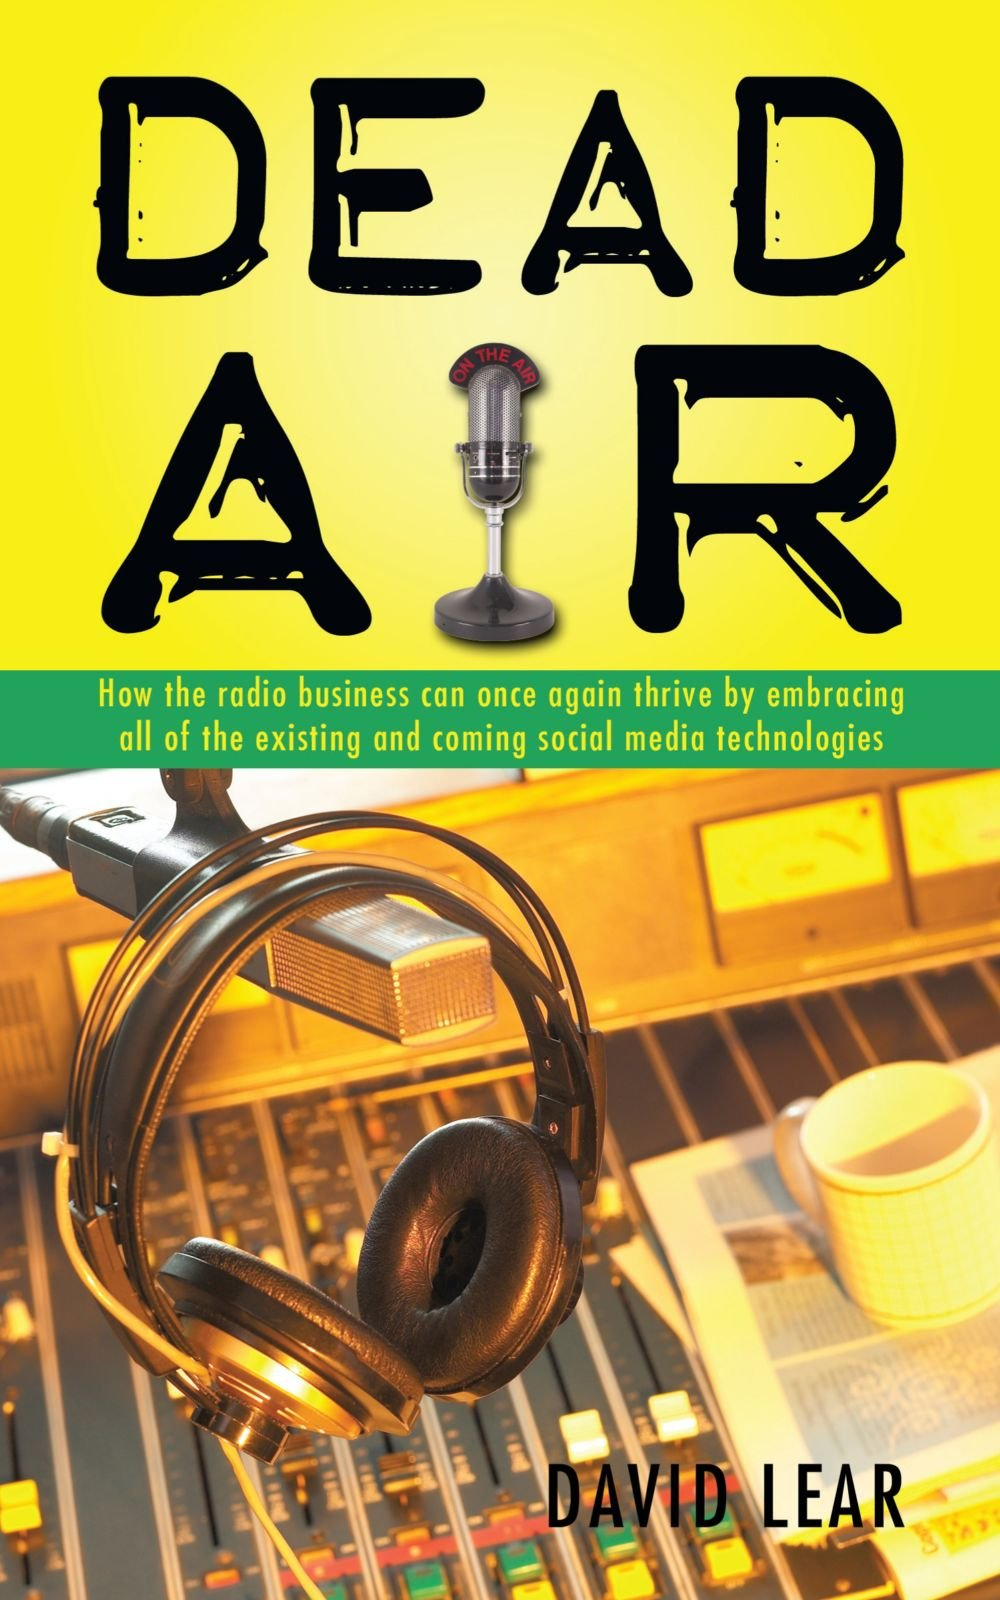 """Read Online """"Dead Air"""": How the radio business can once again thrive by embracing all of the existing and coming social media technologies PDF"""